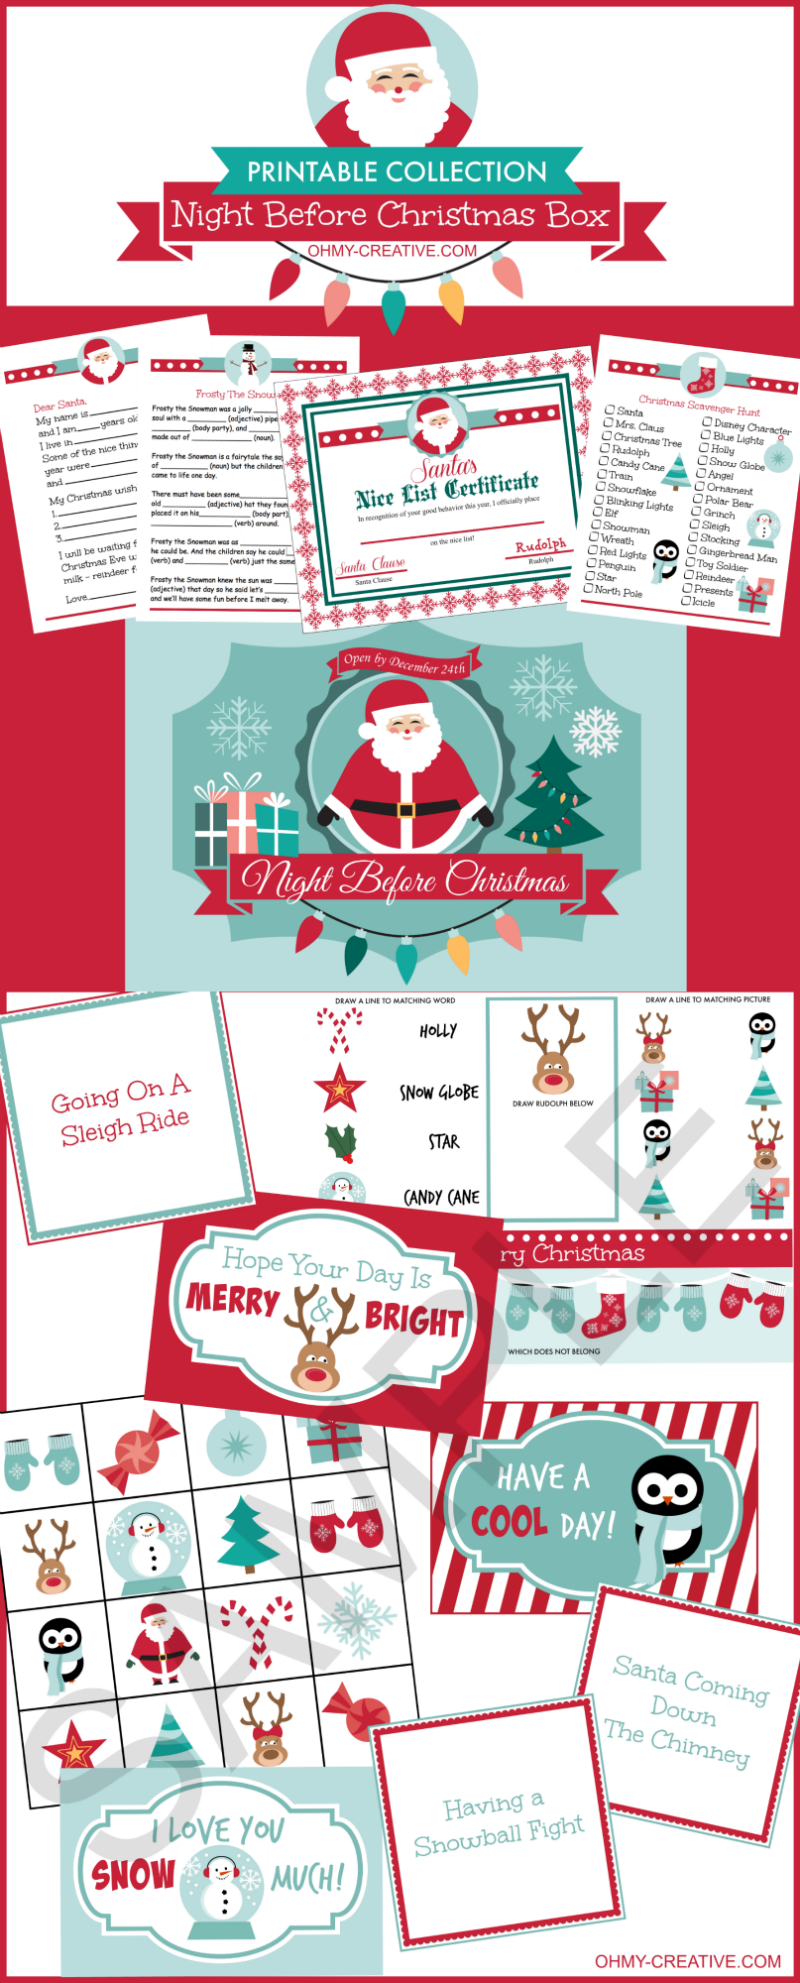 Night Before Christmas Box Printables | Lunch box notes, Nice list ...